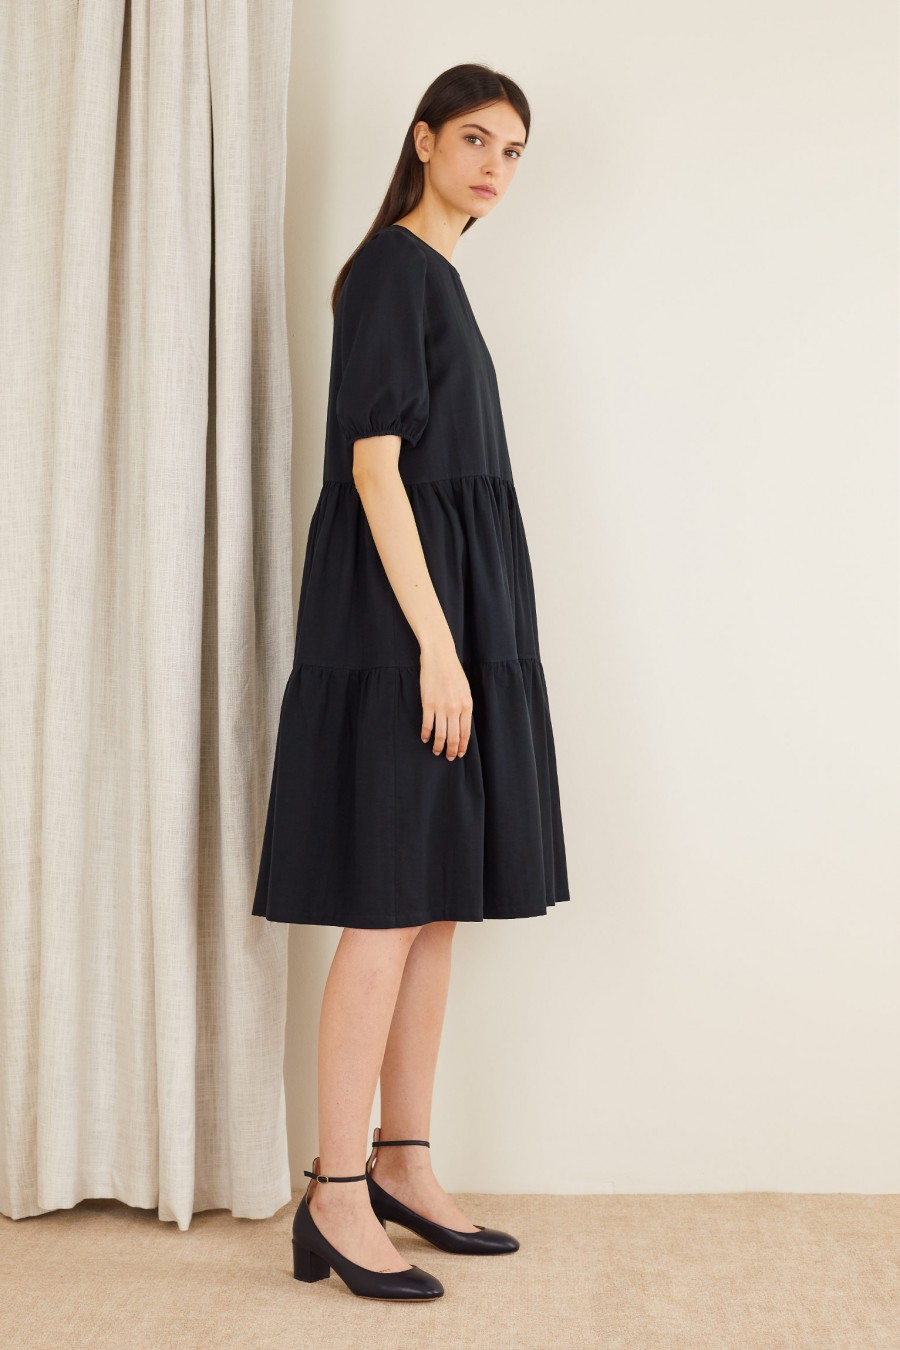 black dress with wide sleeves